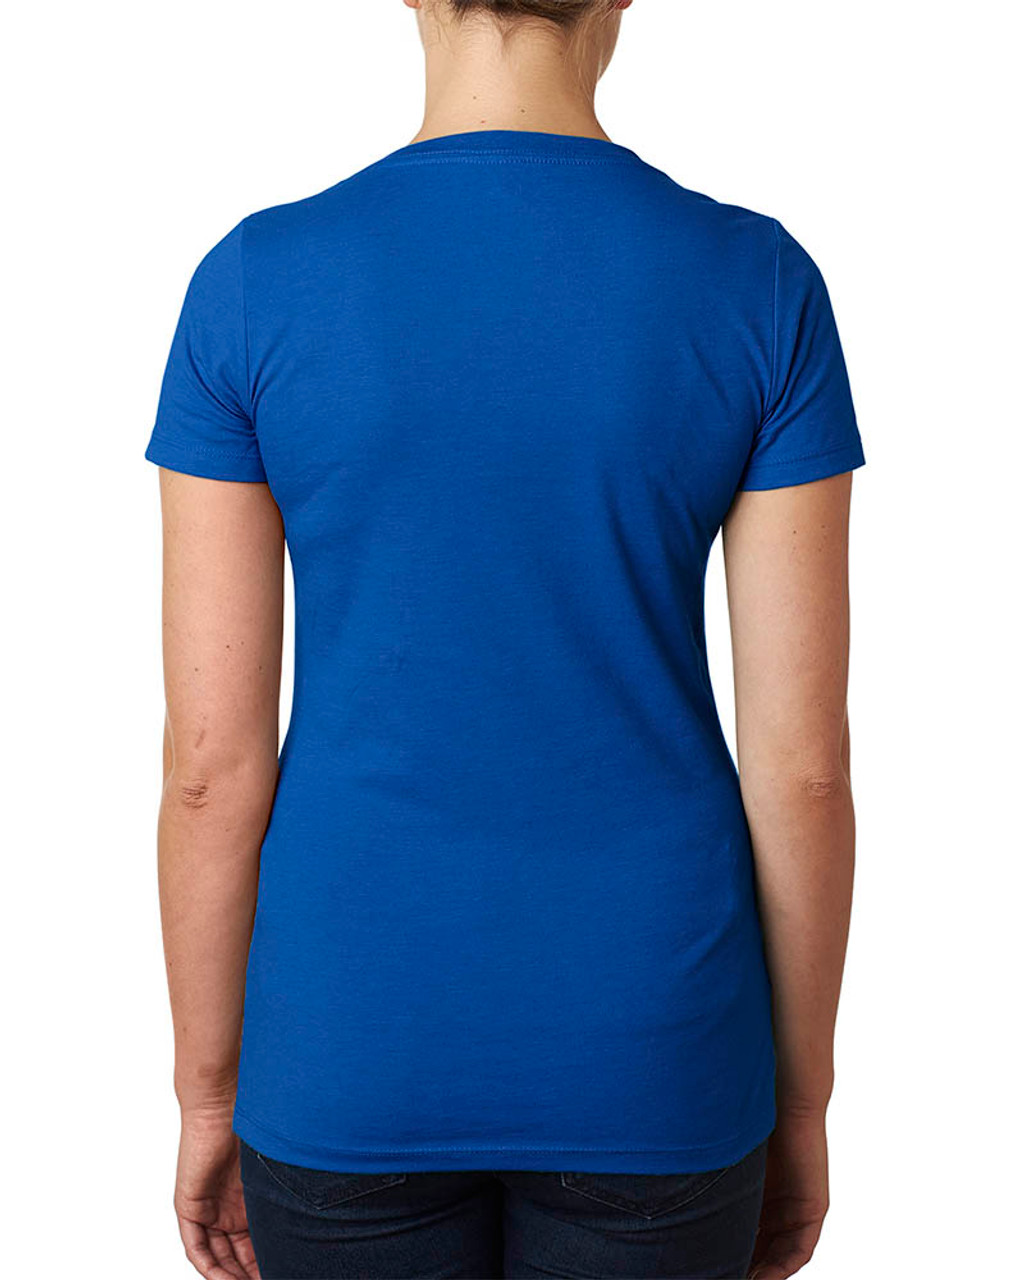 Royal - 6640 Next Level Ladies' CVC Deep V-Neck T-shirt  | BlankClothing.ca